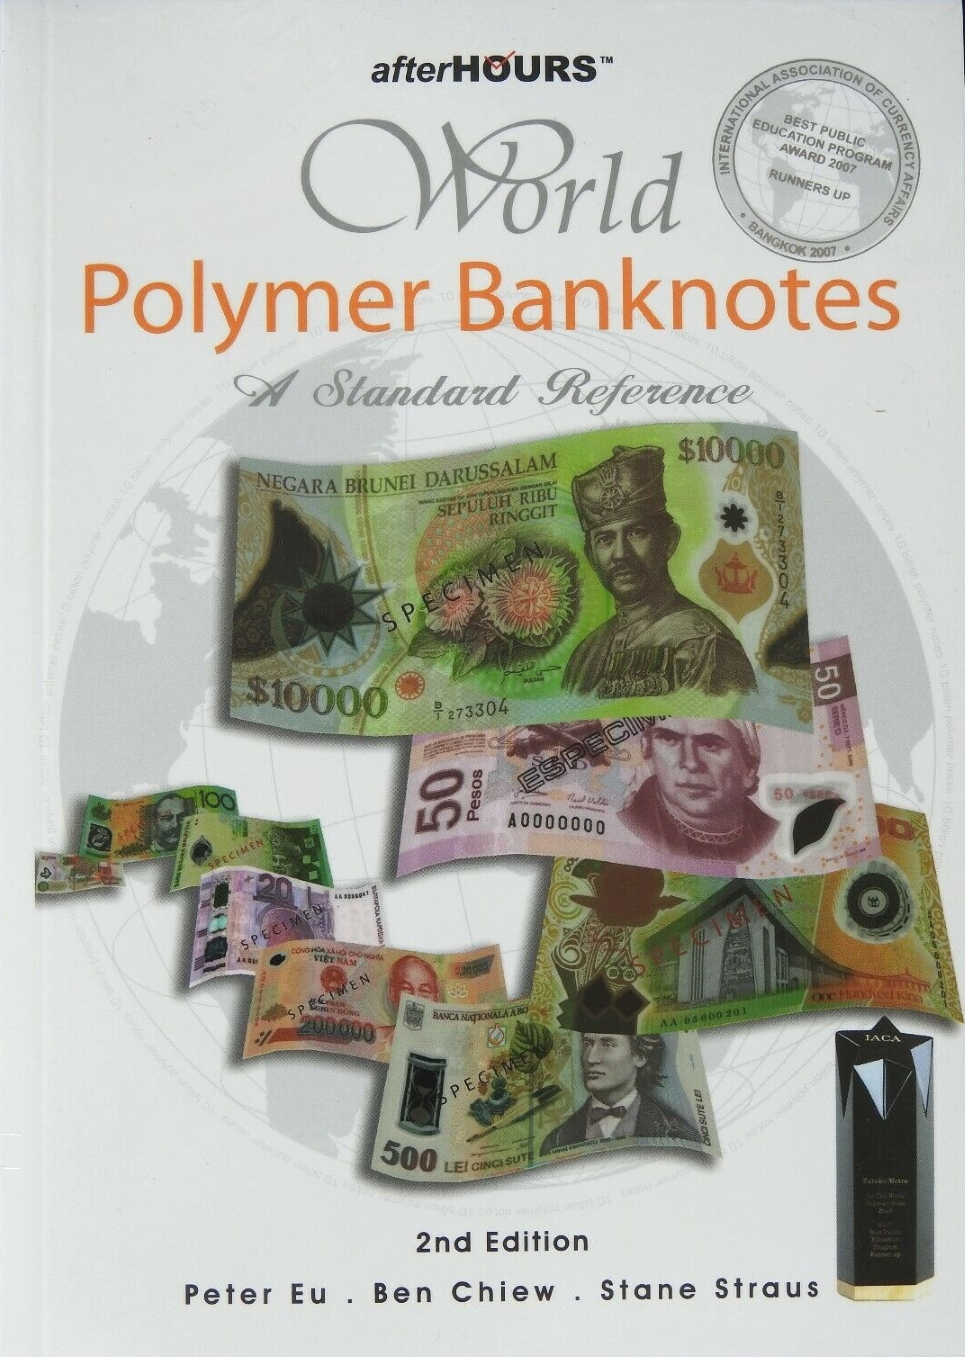 """Peter Eu, Ben Chiew, Stane Straus, """"World Polymer Banknotes: A Standard Reference"""""""